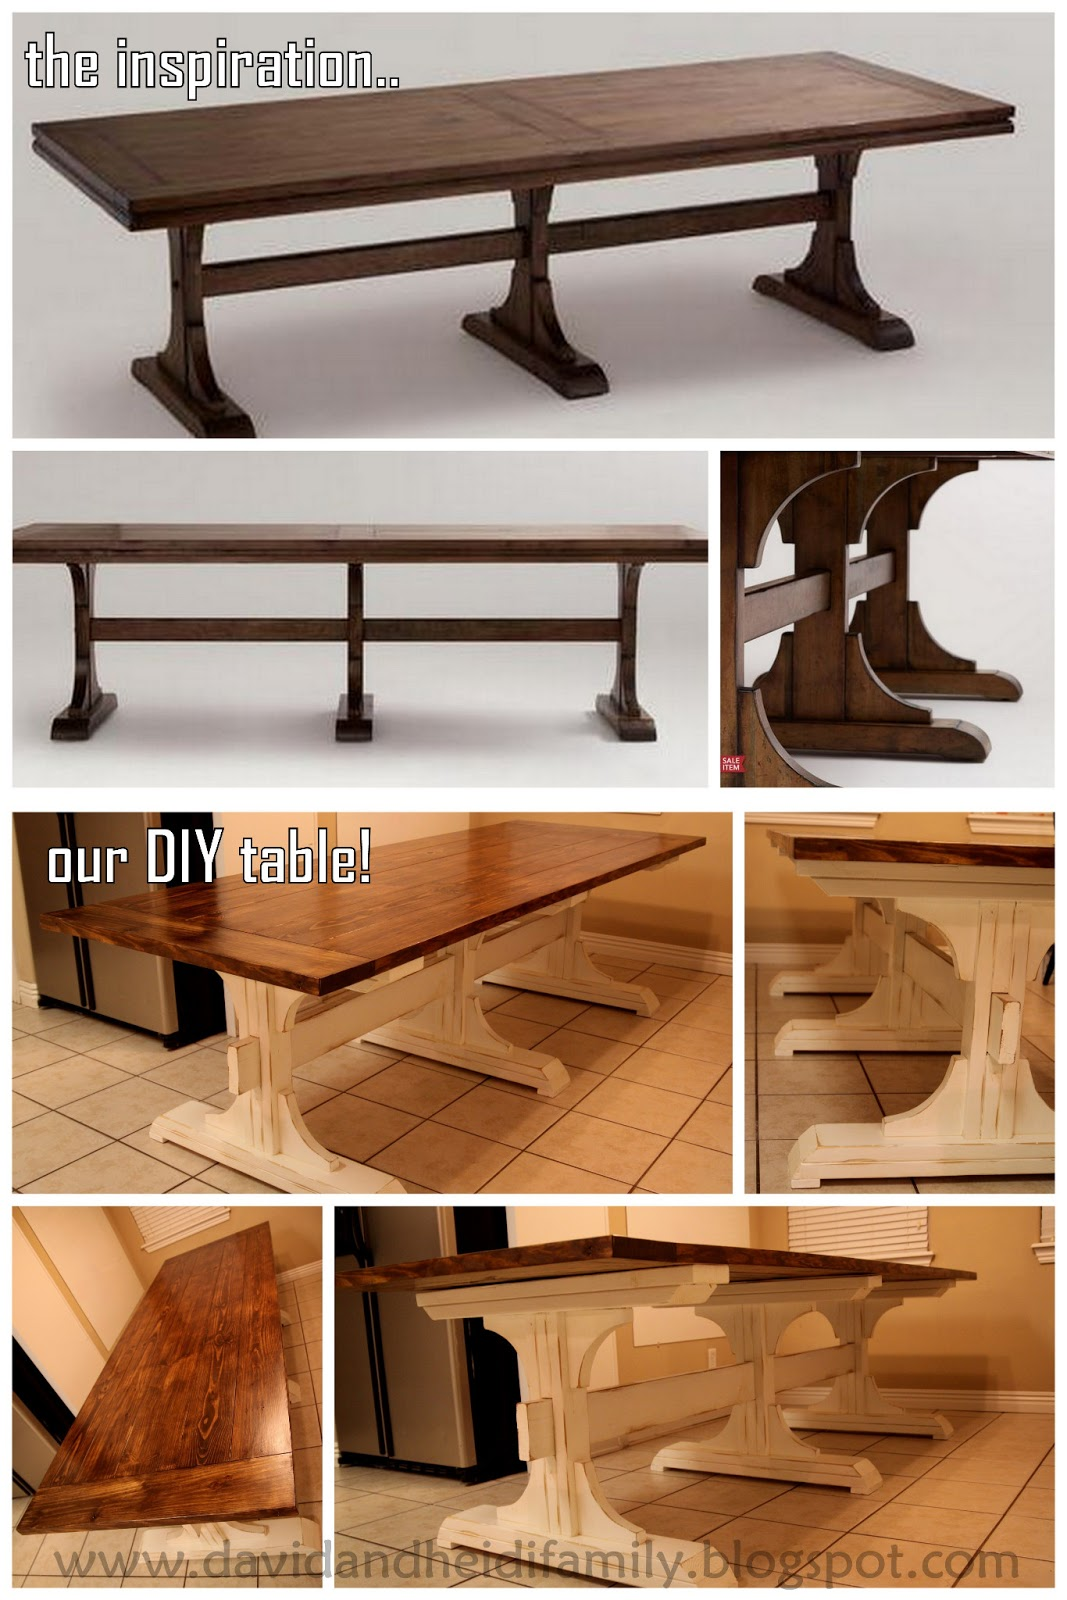 Best Site For Woodworking Plans Free Pedestal Desk Plans: pedestal farmhouse table plans